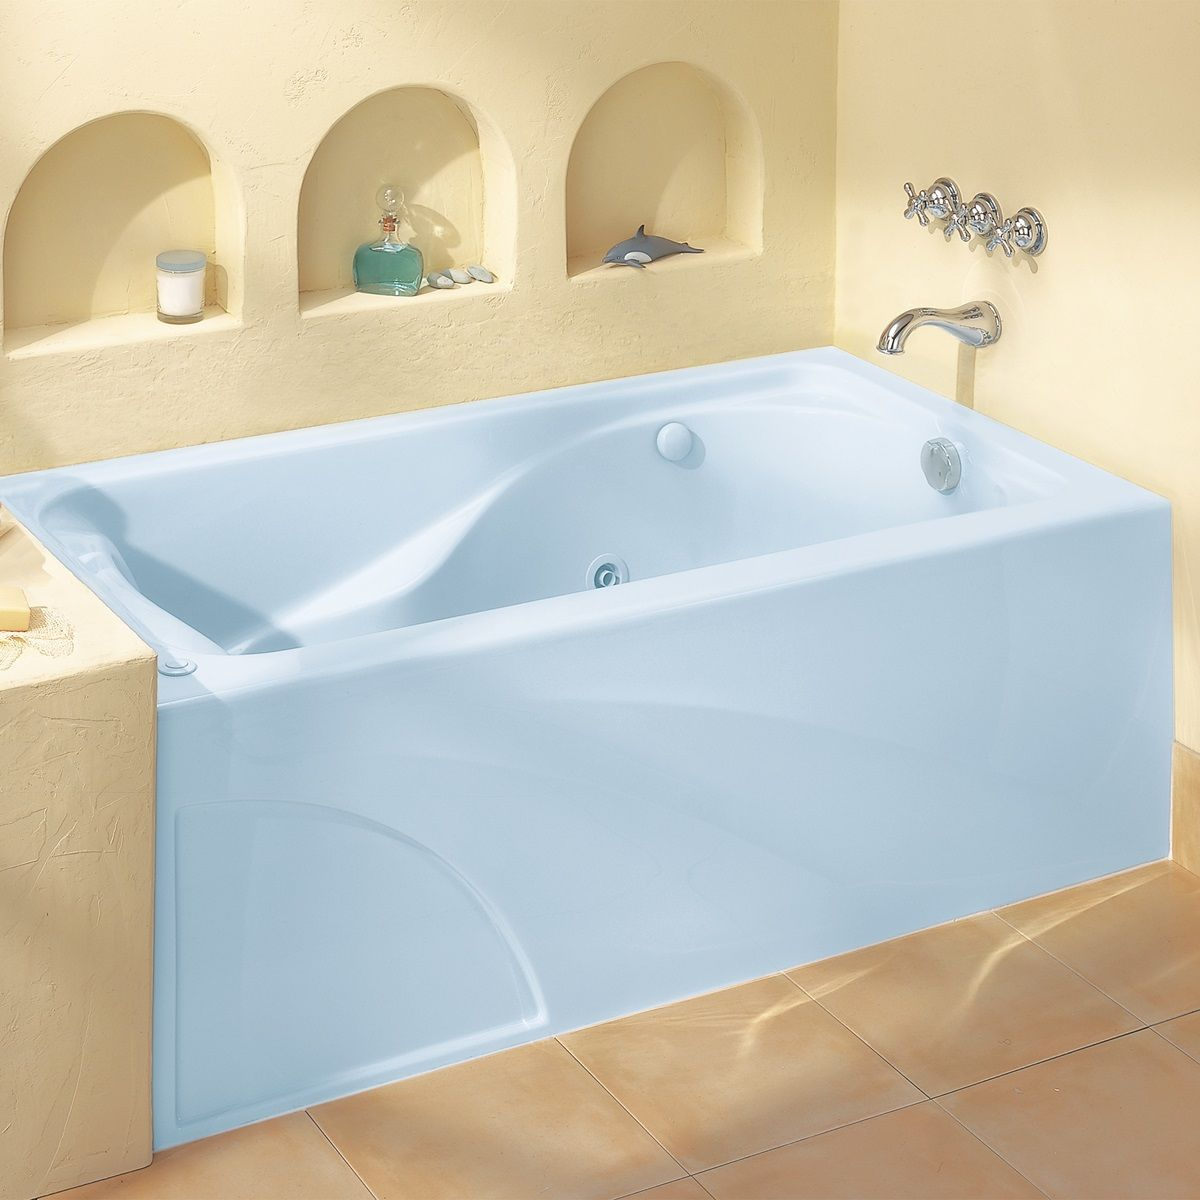 Massage Tubs - Cadet 60 Inch by 32 Inch EverClean Whirlpool with ...